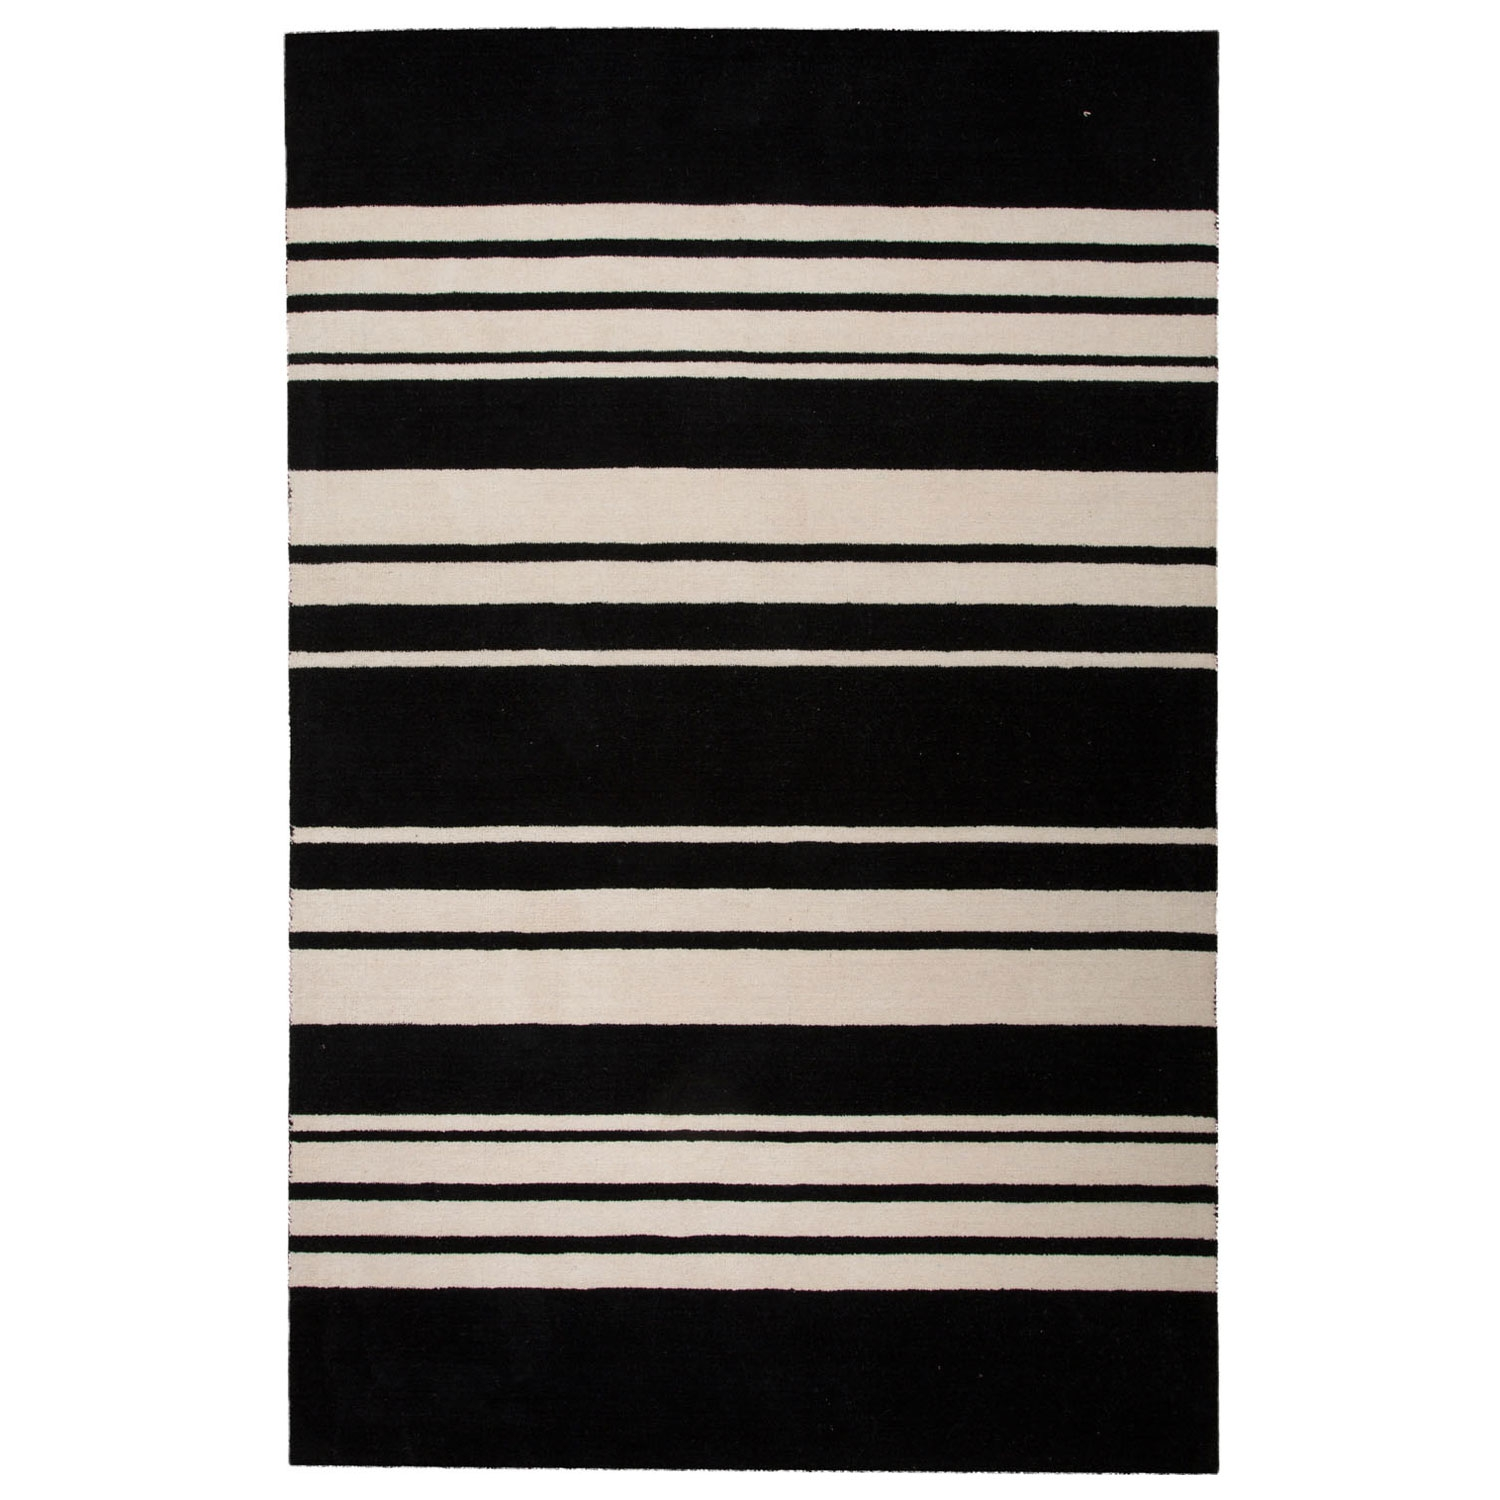 Striped Rugs Browse Our Range Of Striped Area Rugs Varied Colors Intended For Striped Mats (View 9 of 15)